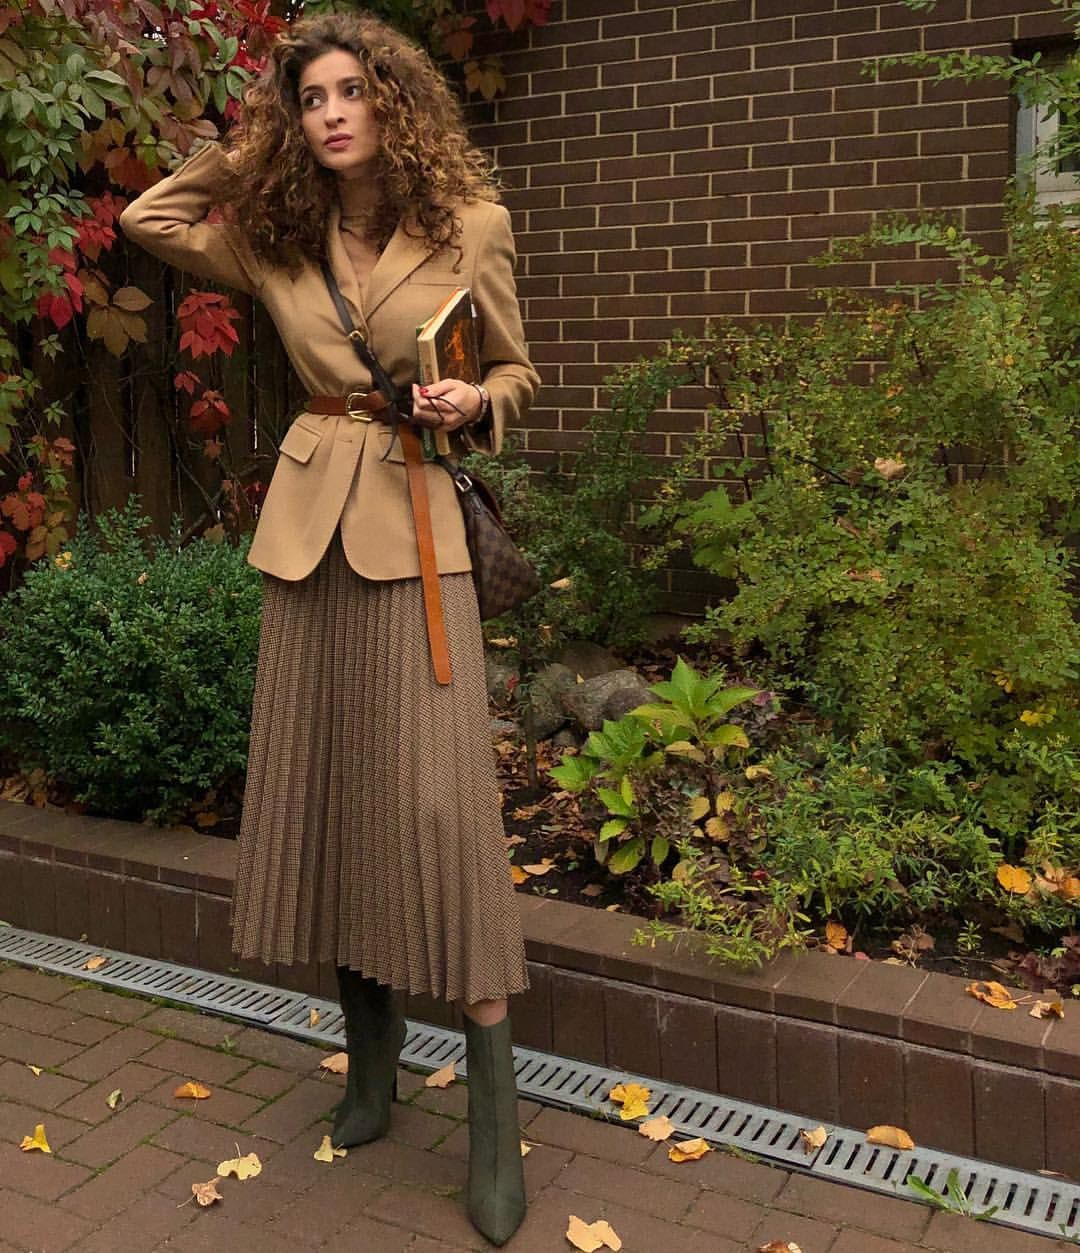 Brown style outfit with blouse, skirt, coat